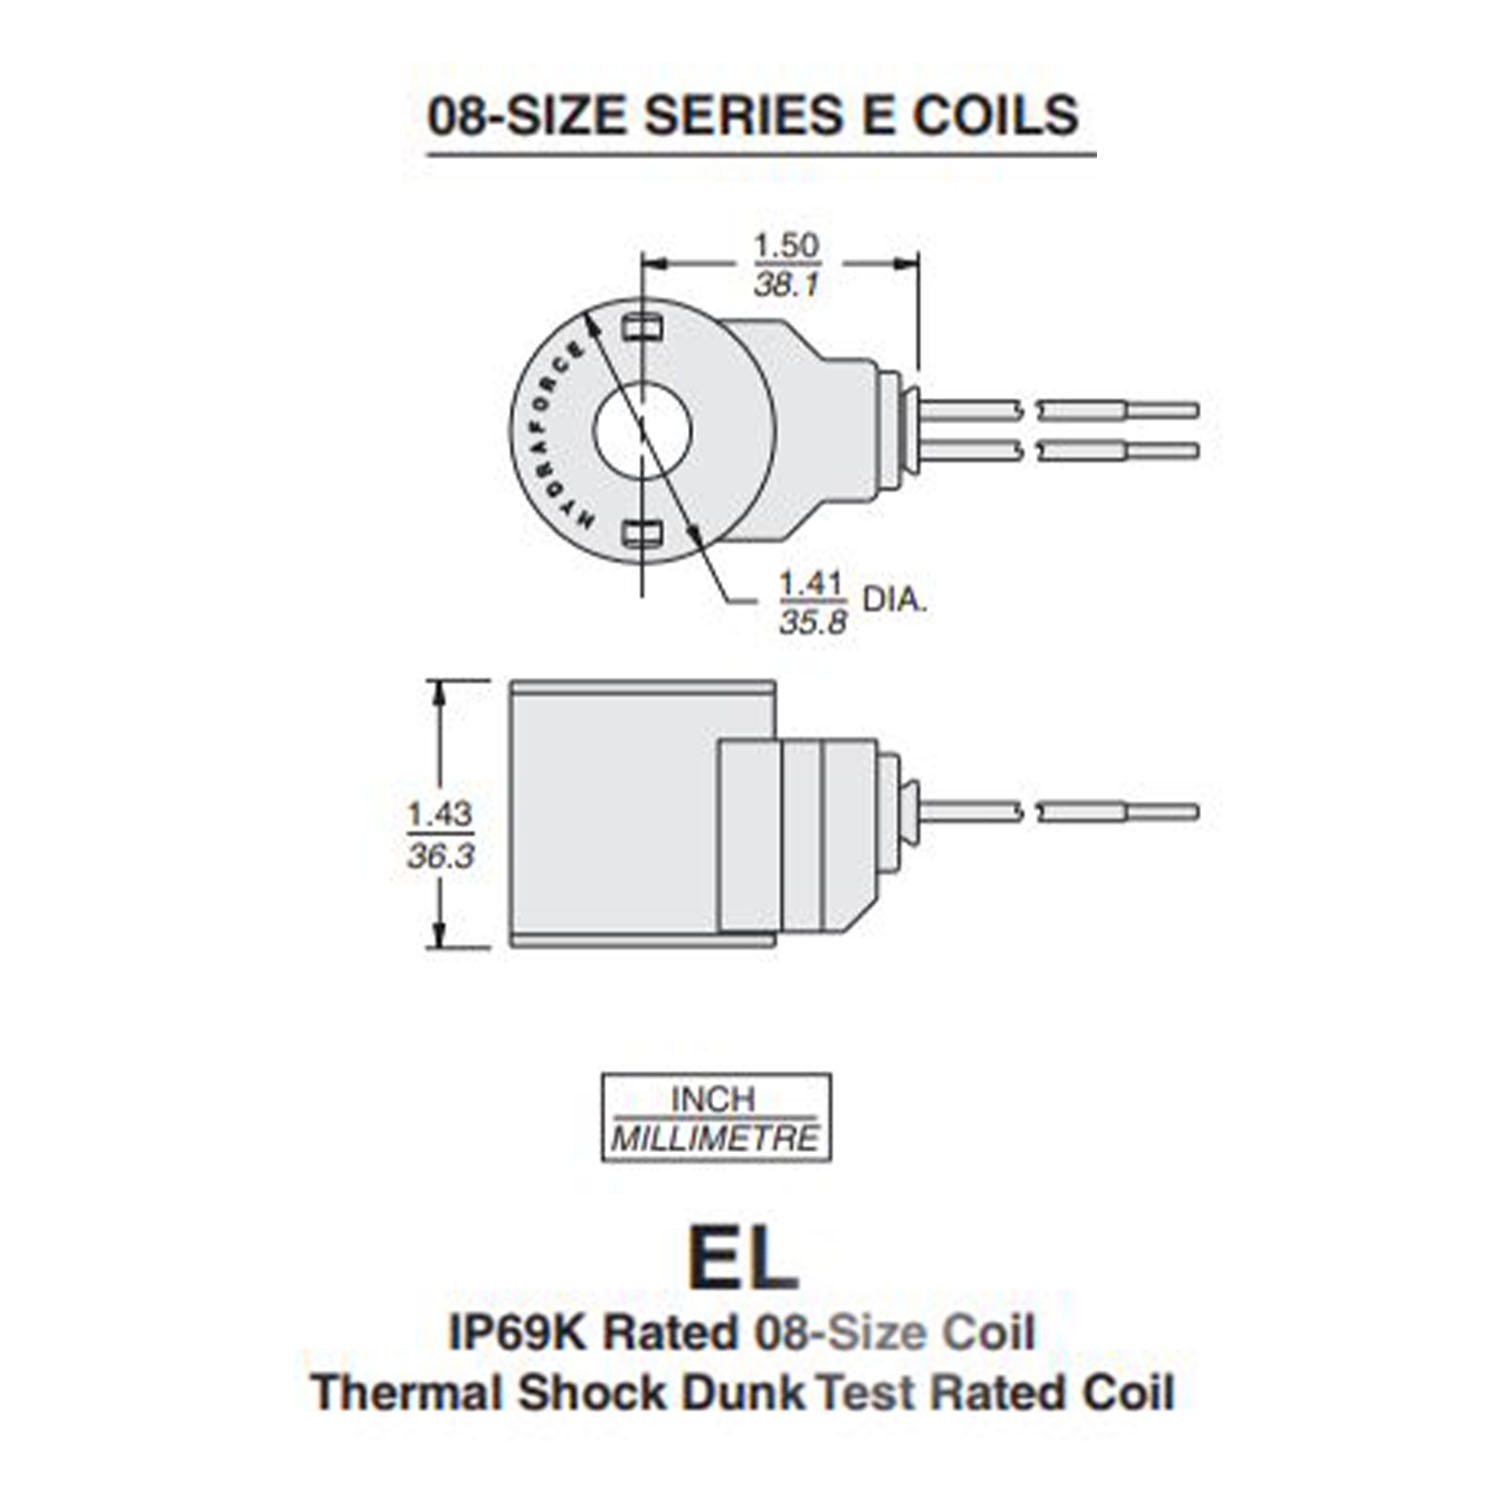 HydraForce 4305112 Solenoid Valve Coil, Dual Wire Leads, 12v DC | Hydraulic Wiring Diagram 12 Volts Dc Coils |  | Summit Hydraulics